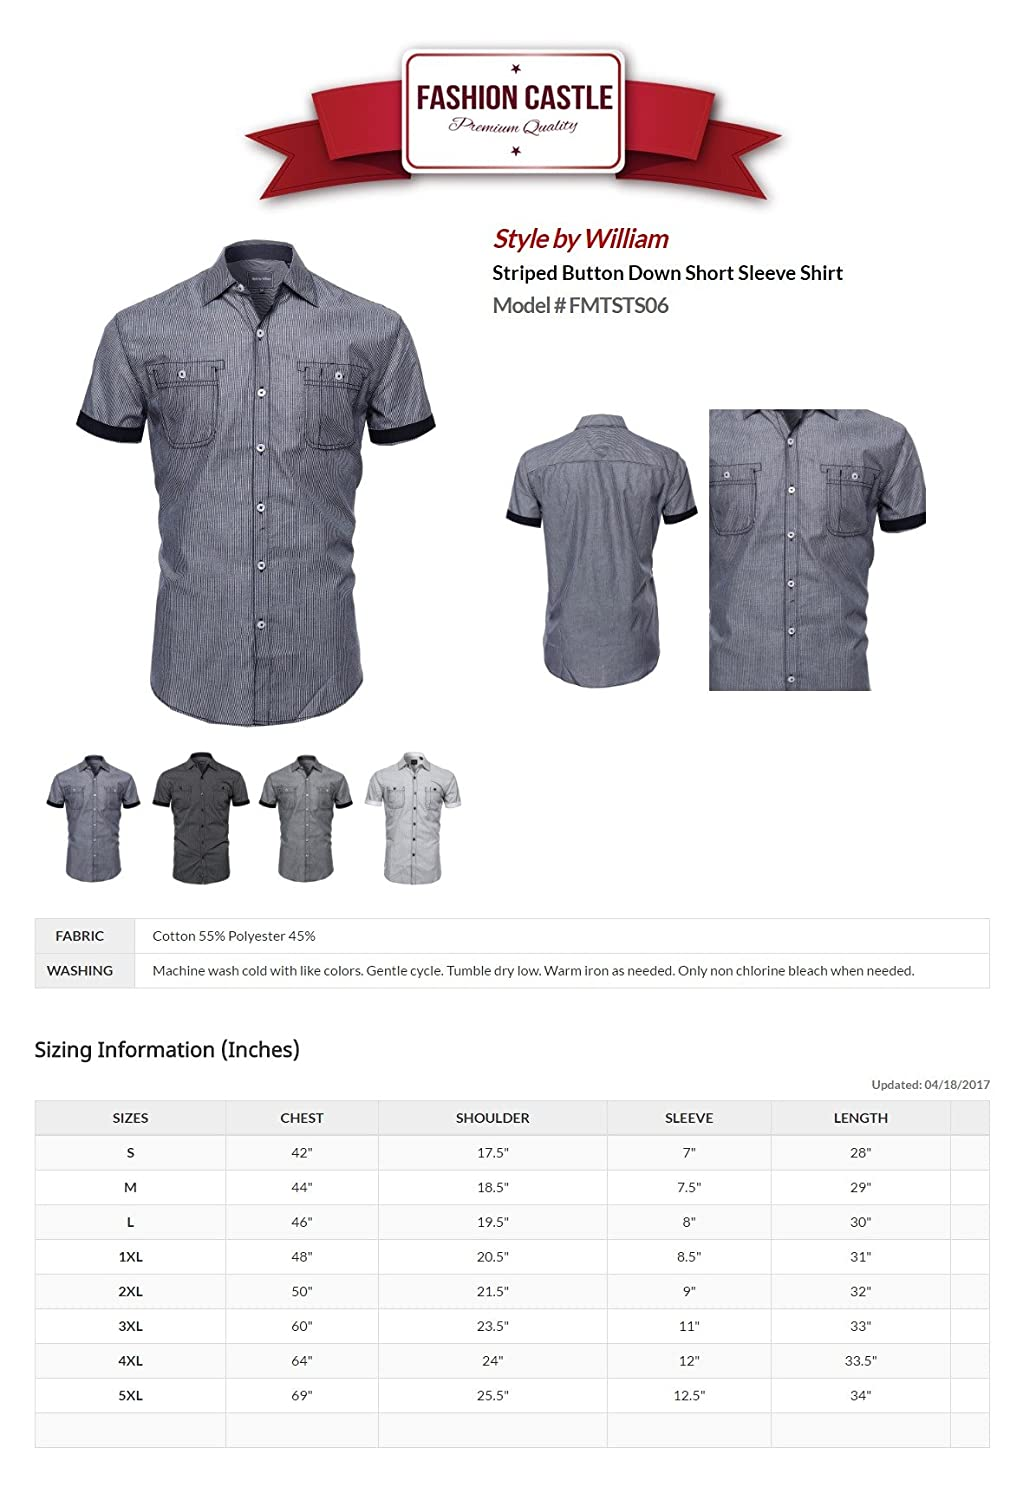 Amazon.com: SBW Mens Casual Versatile Button-Collar Down Short Sleeve Shirt Various Designs: Clothing